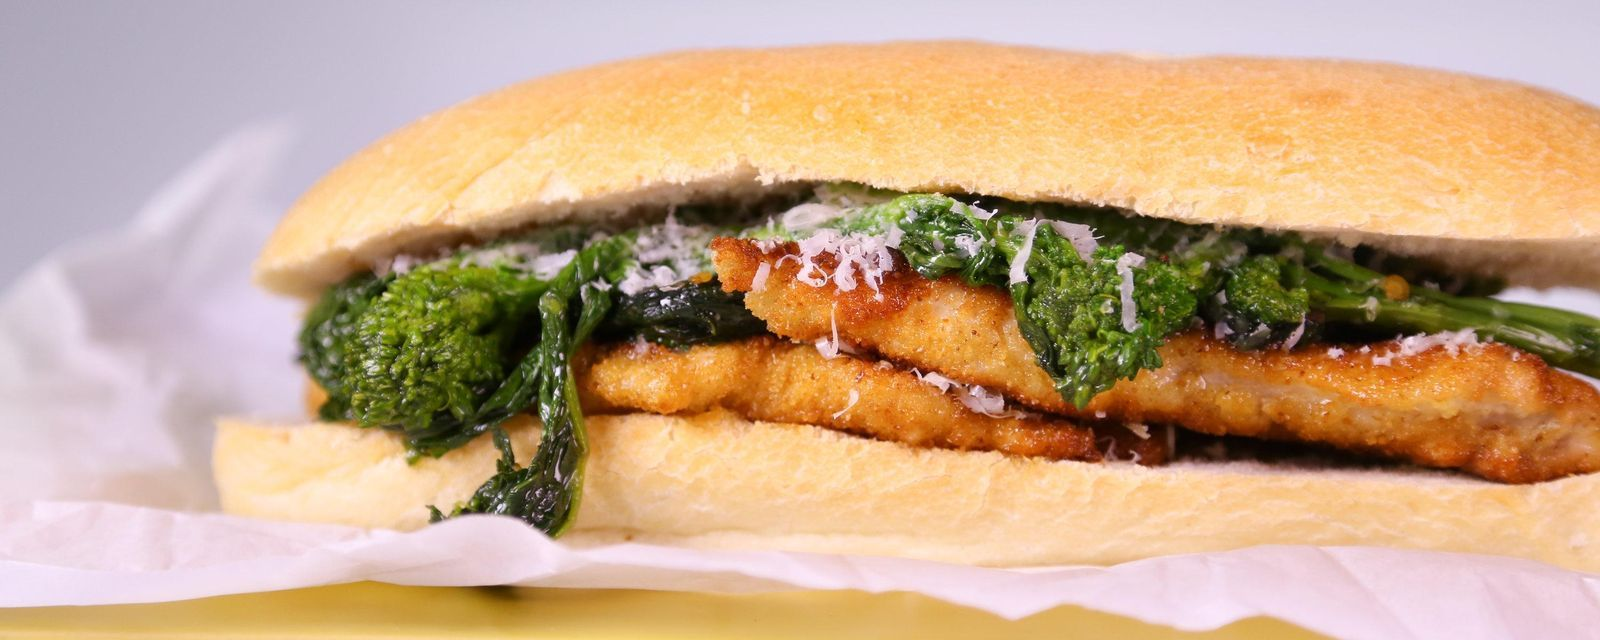 Michael symons turkey cutlet with broccoli rabe recipe by